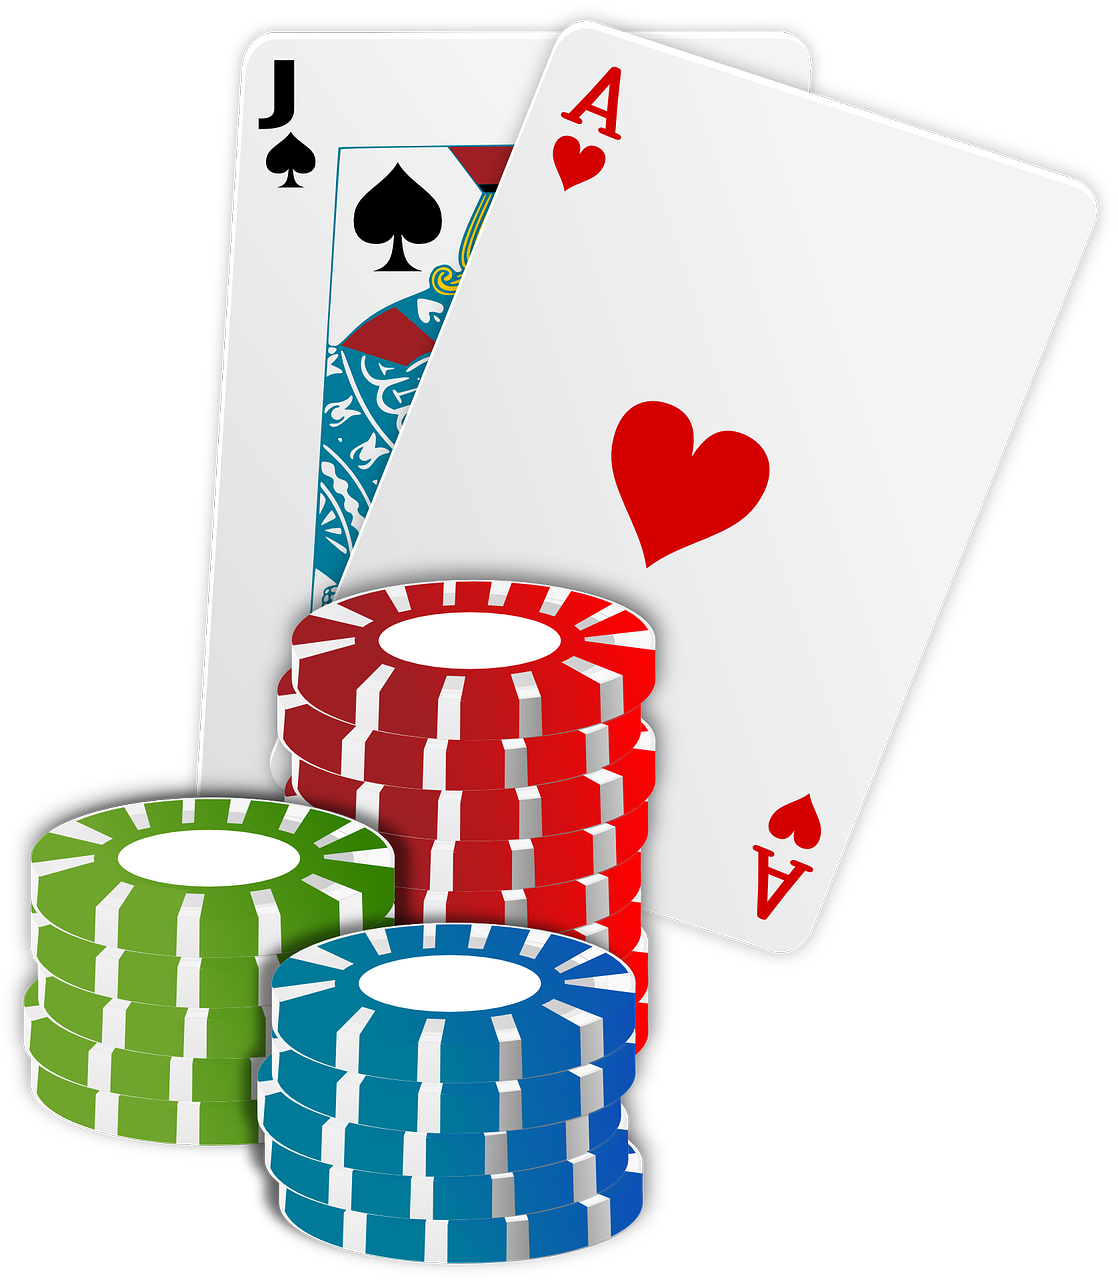 Play money free clipart jpg free stock What Is The Best VPN to Play Online Poker in 2018? jpg free stock